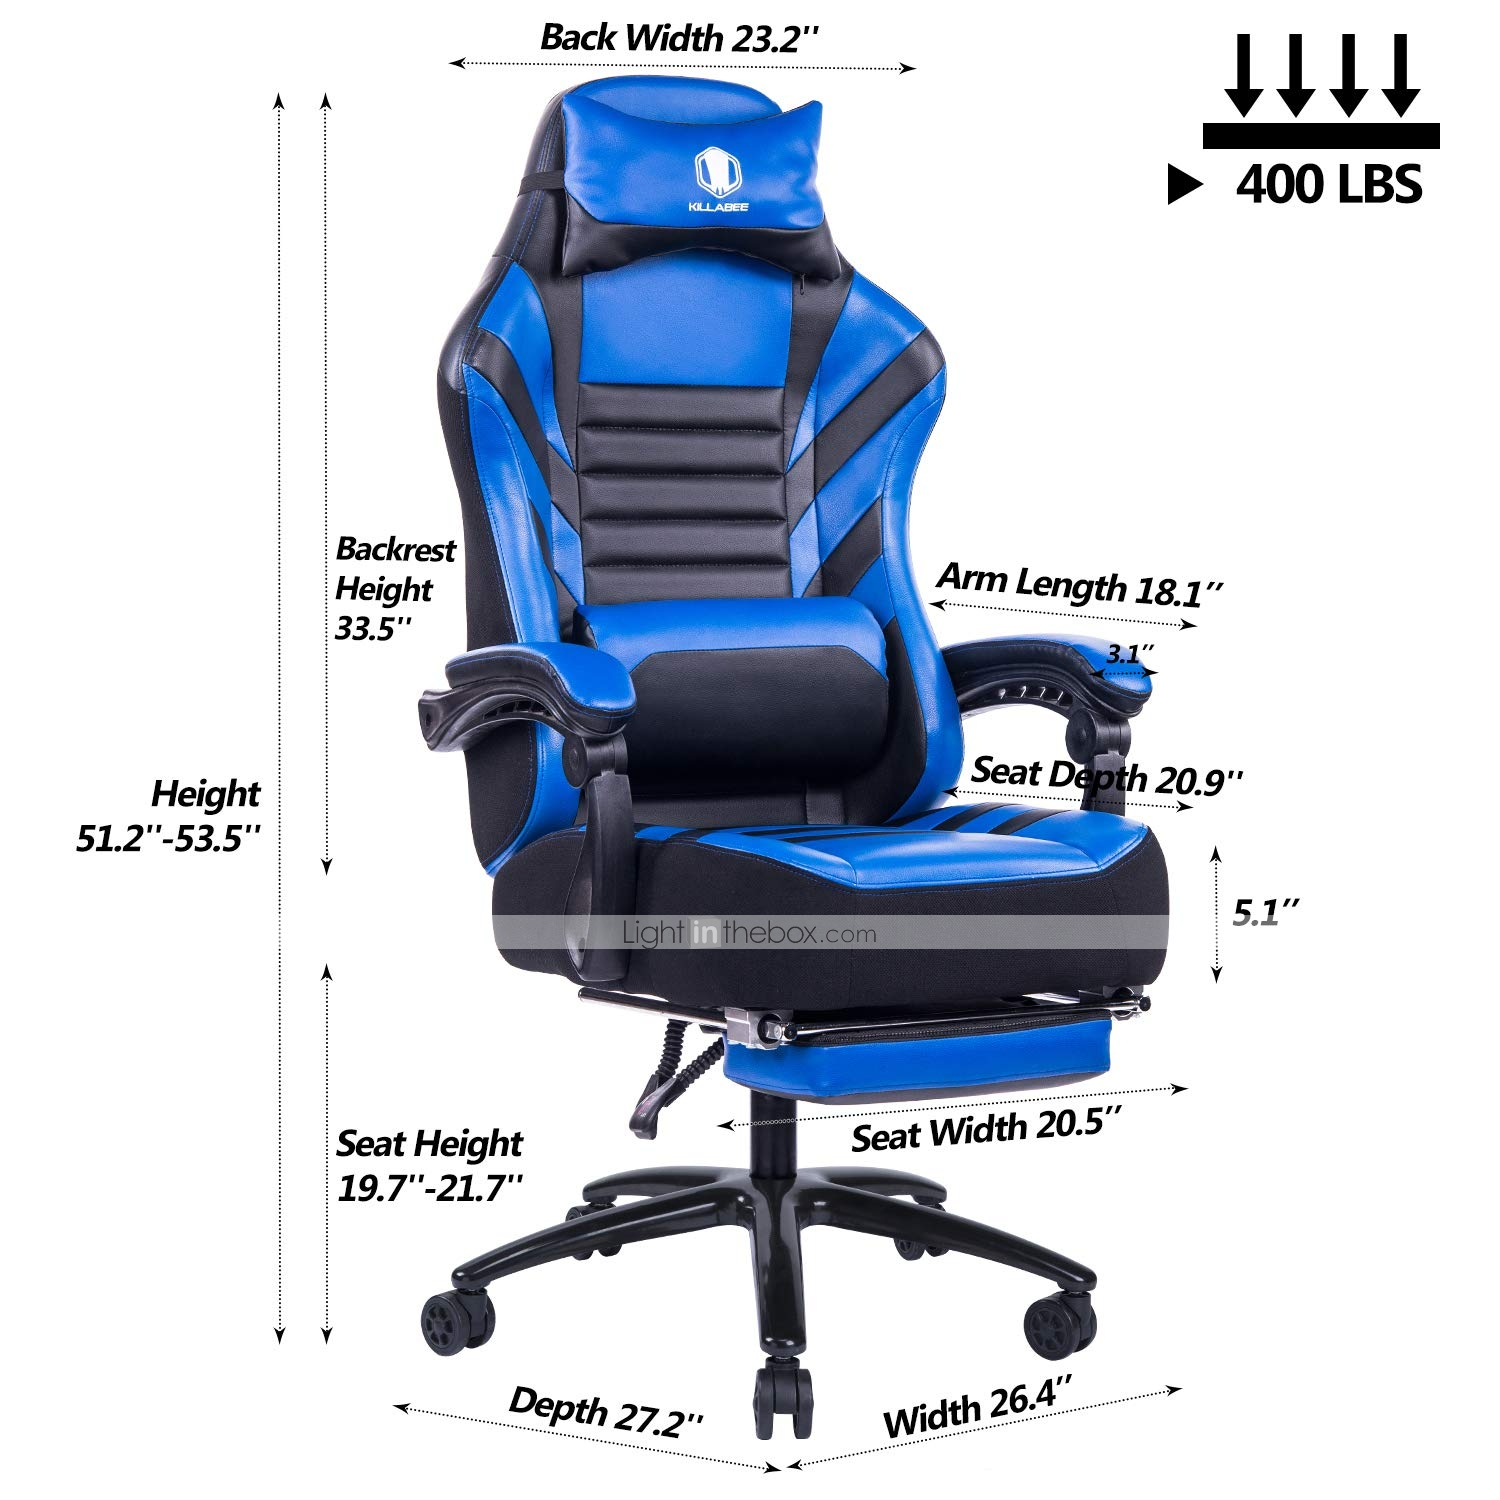 Astonishing Killabee Big Tall 400Lb Memory Foam Reclining Gaming Chair Metal Base Adjustable Back Angle And Retractable Footrest Ergonomic High Back Leather Caraccident5 Cool Chair Designs And Ideas Caraccident5Info